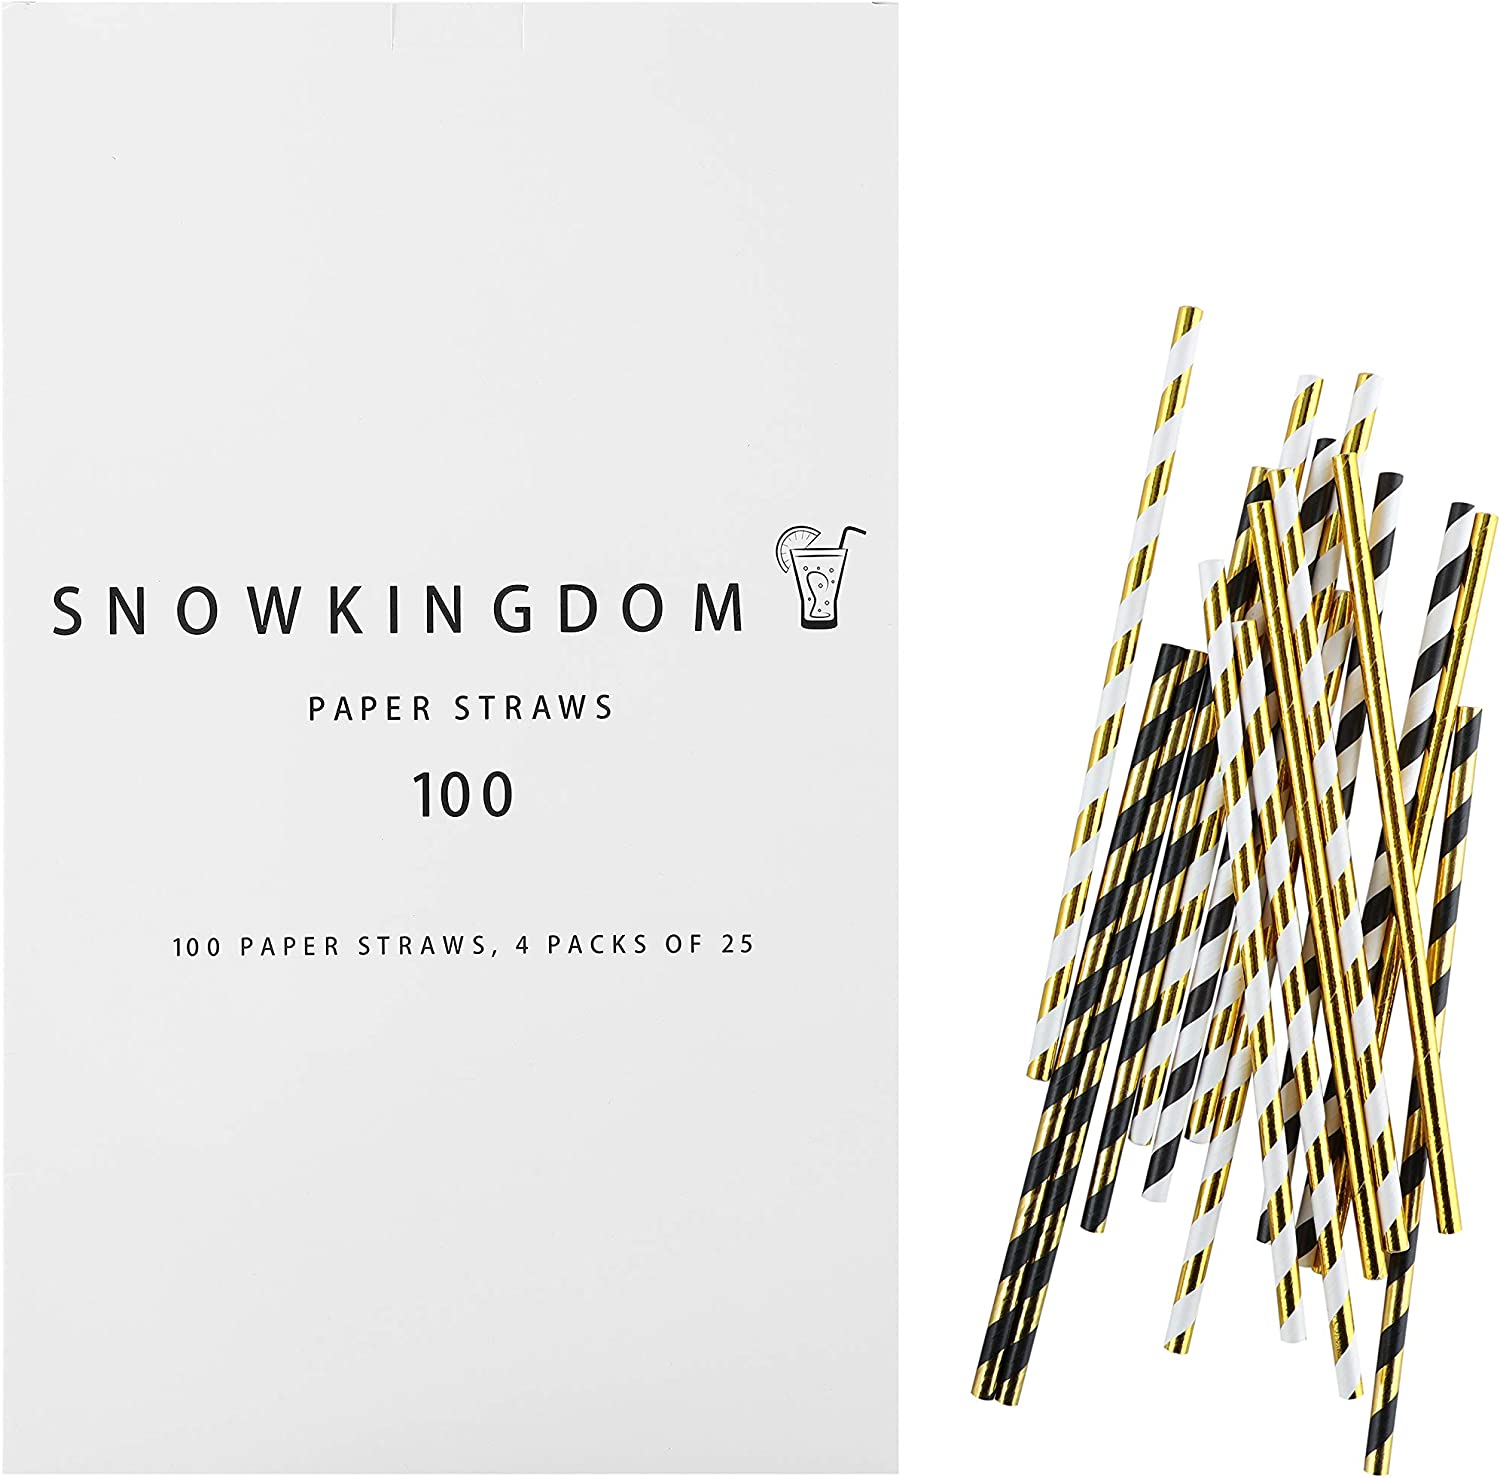 Snowkingdom Assorted Golden Paper Straws Metallic Foil Black White Stripe For Drinking And Party Supplies Cake Pop Sticks Decorations Biodegradable 100 Pcs 4 Individual Packs Of 25 Units With Box